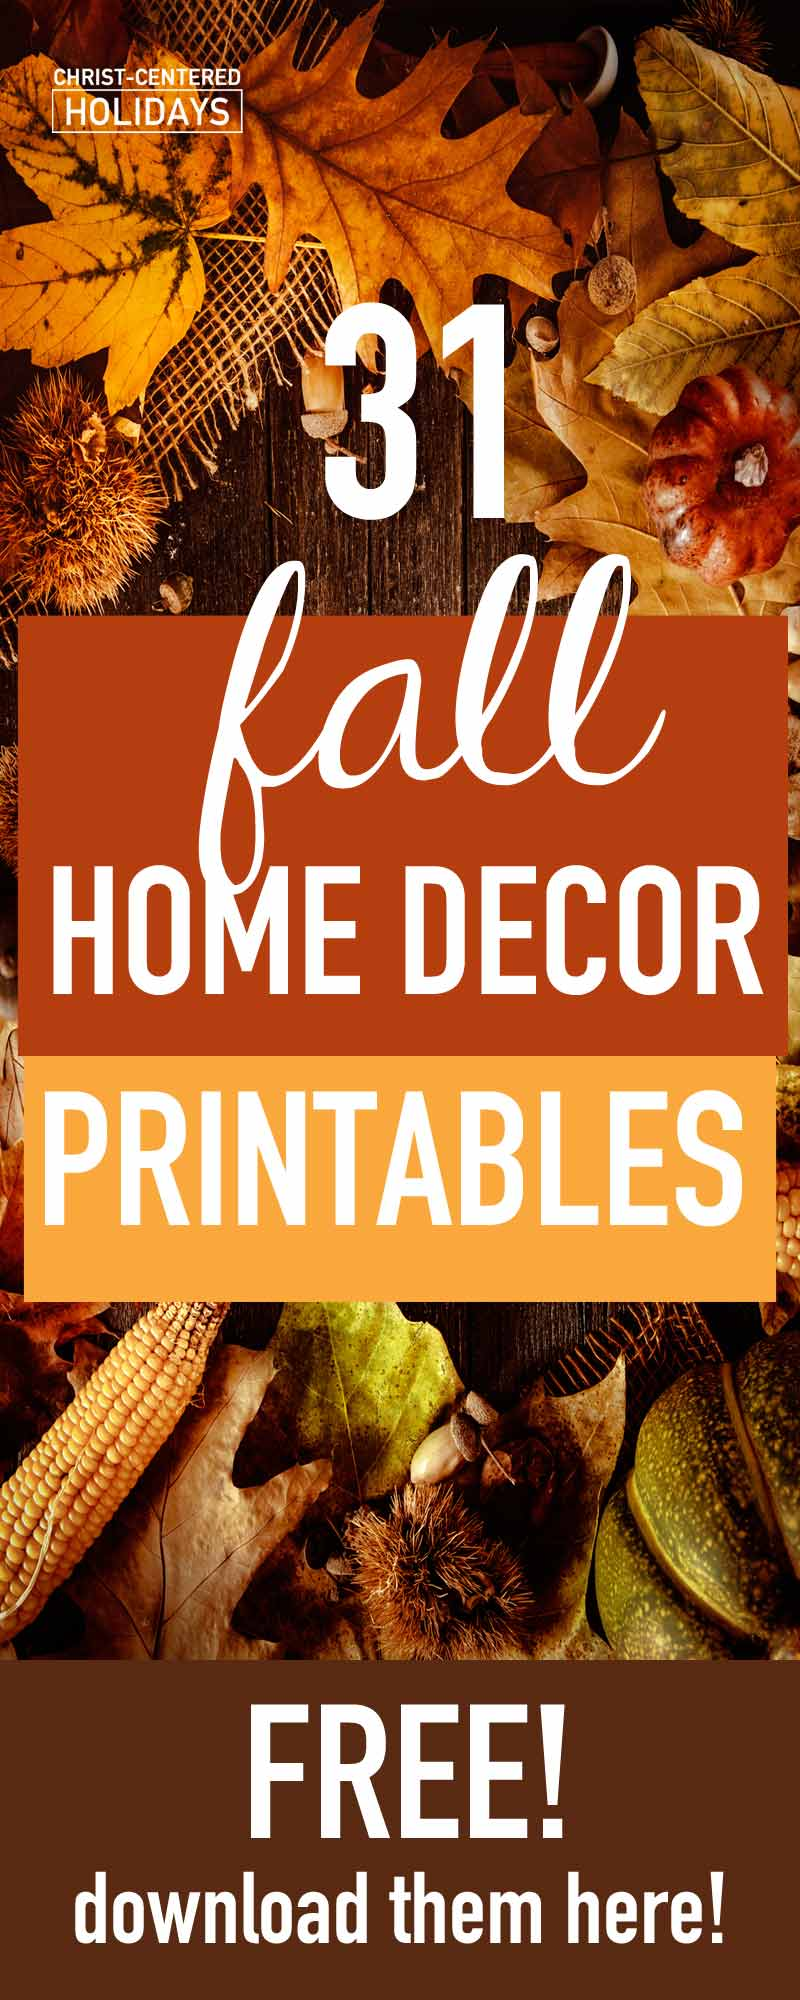 free printable fall pictures | fall pictures print free | free printable fall leaves | cheap fall decor | cheap fall decorations | diy fall decorating | fall free printables | fall printable art | free printable art prints | free fall printables | free wall art printables | fall art prints | free printable fall subway art | fall home decorating ideas | diy fall decor | diy fall decorating ideas